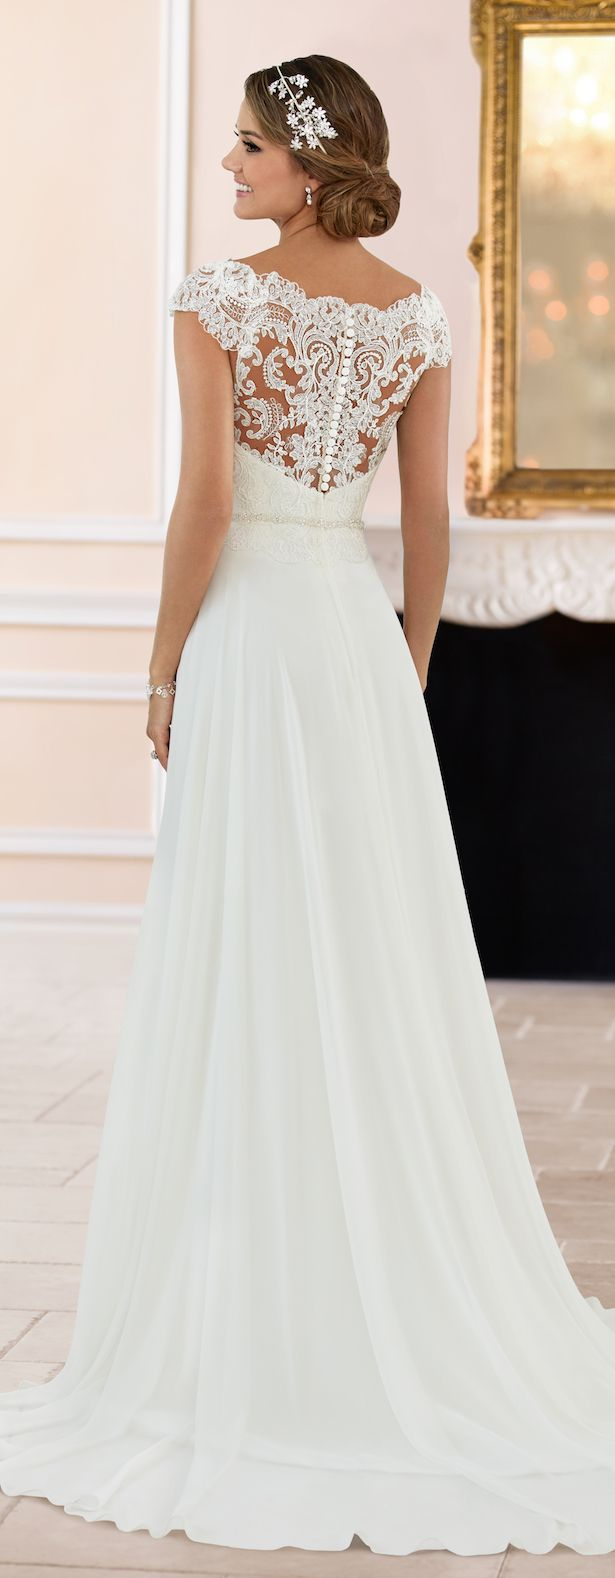 Best 25 wedding dress styles ideas on pinterest dress for How to find the perfect wedding dress